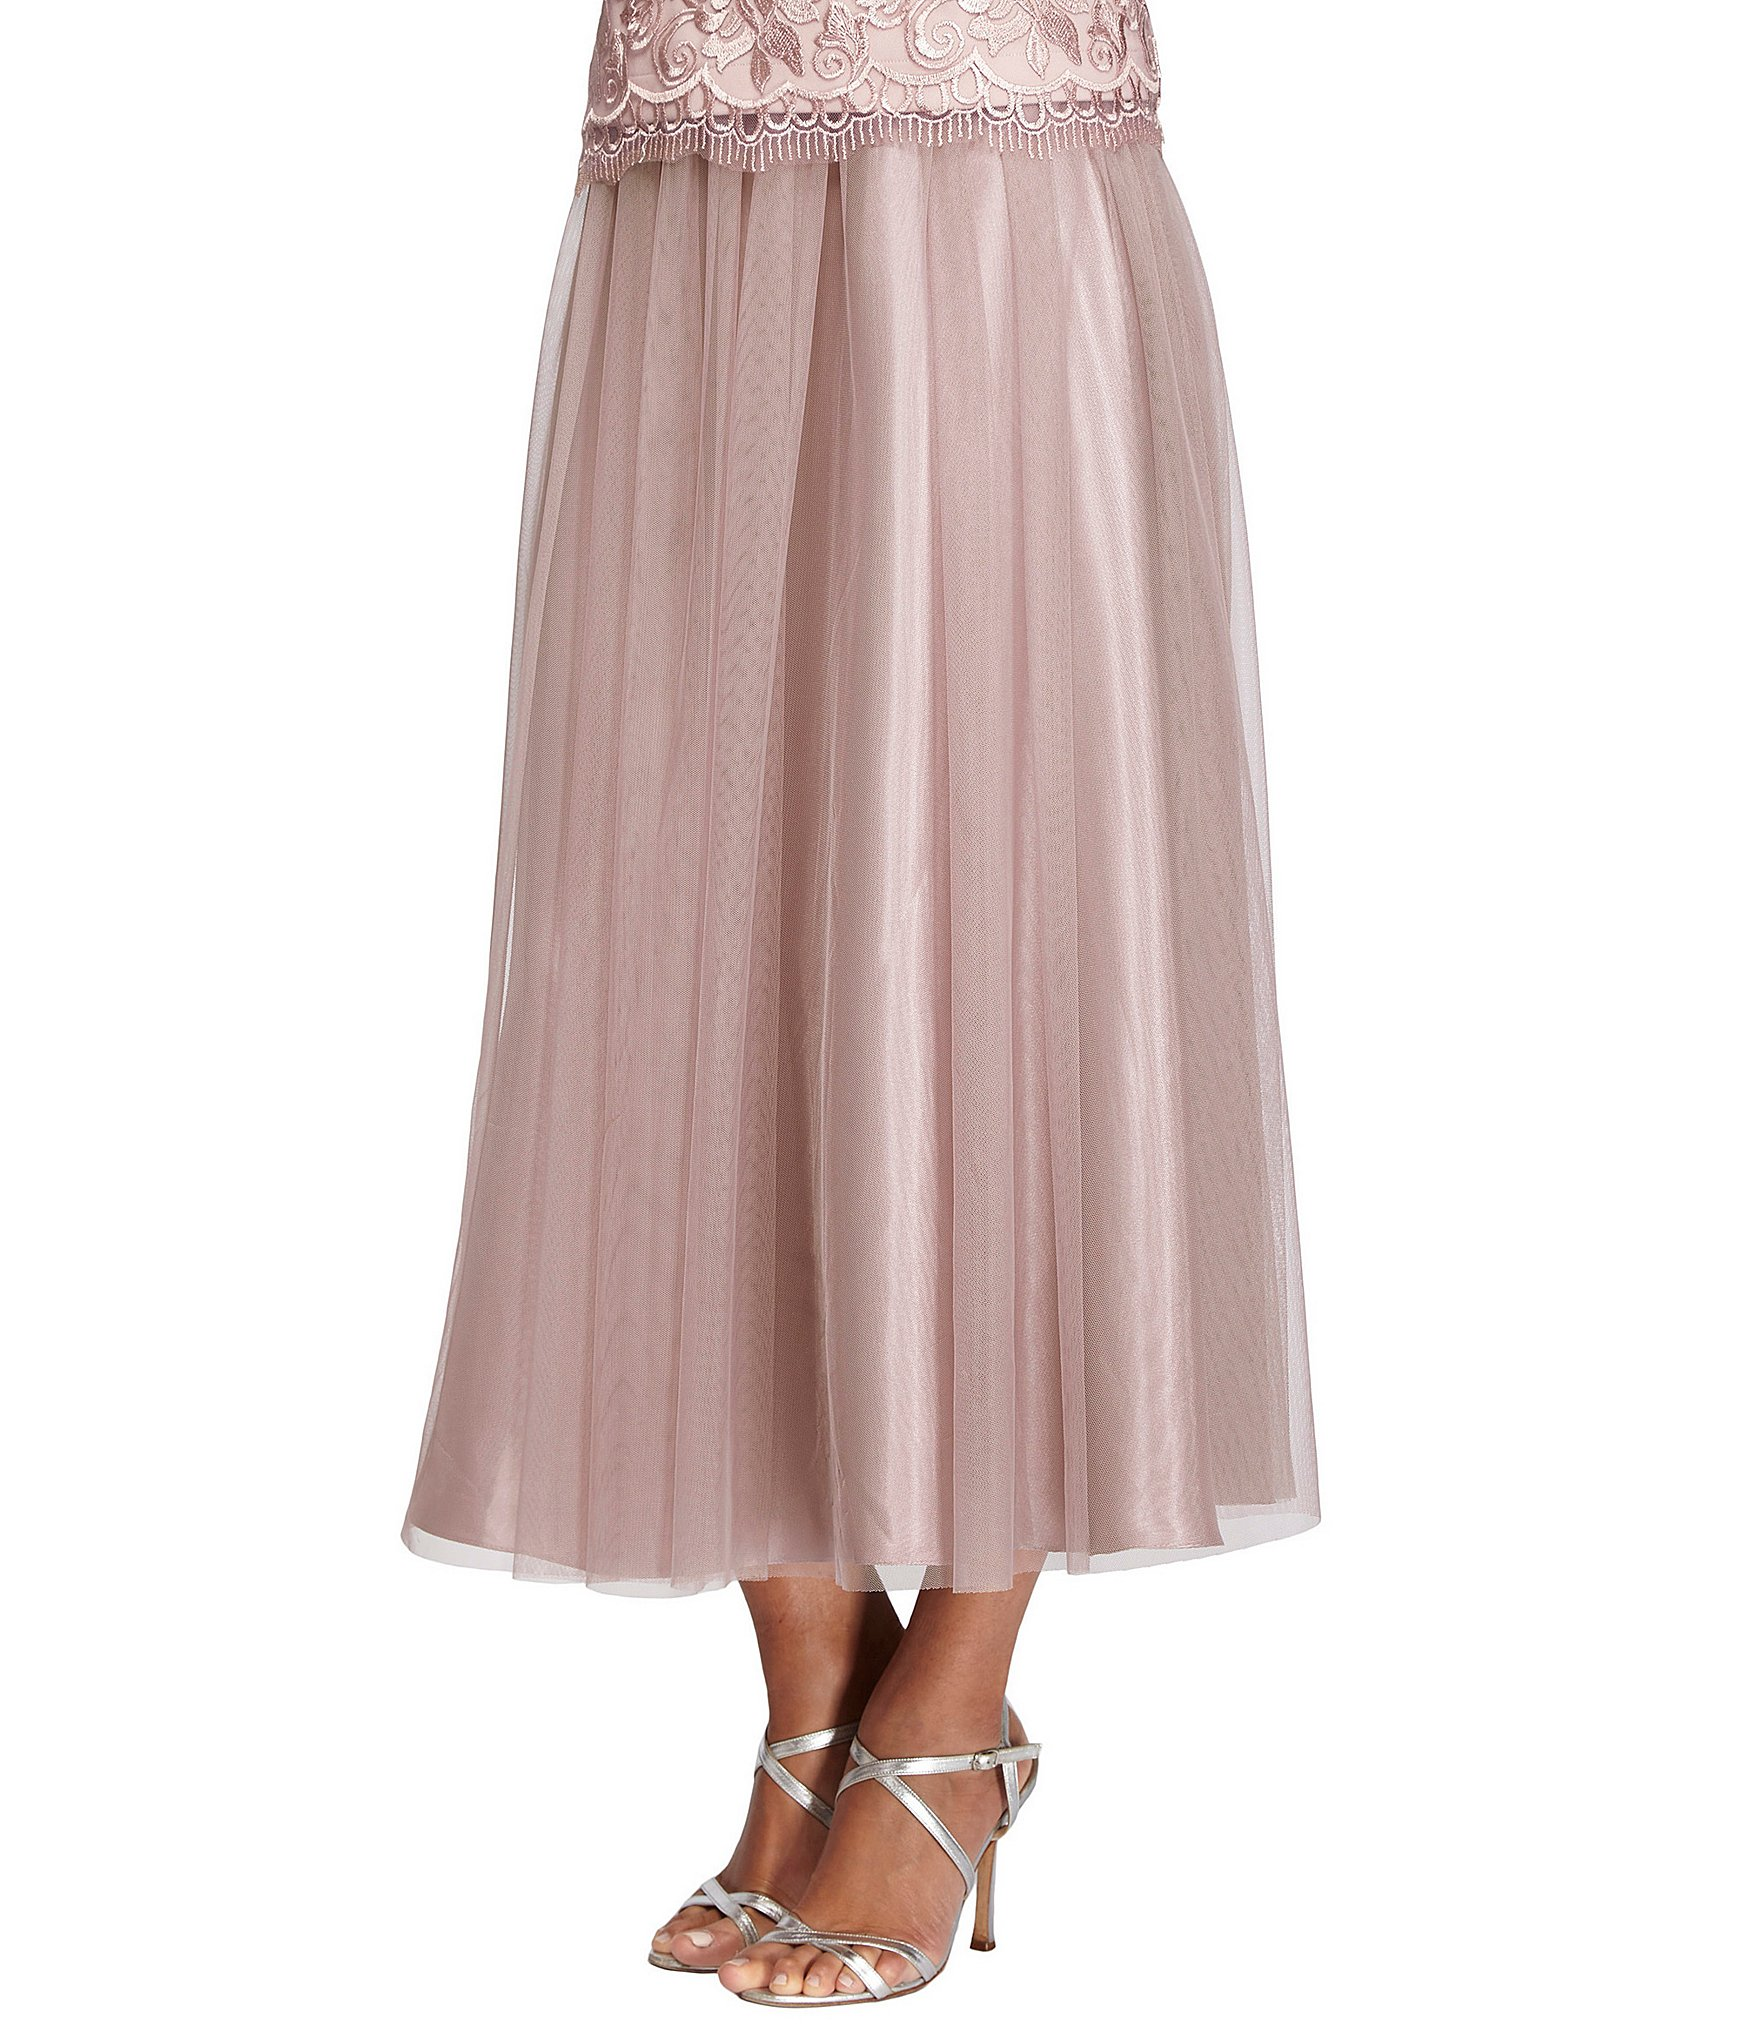 Women's Clothing | Dresses | Separates | Bottoms | Skirts ...